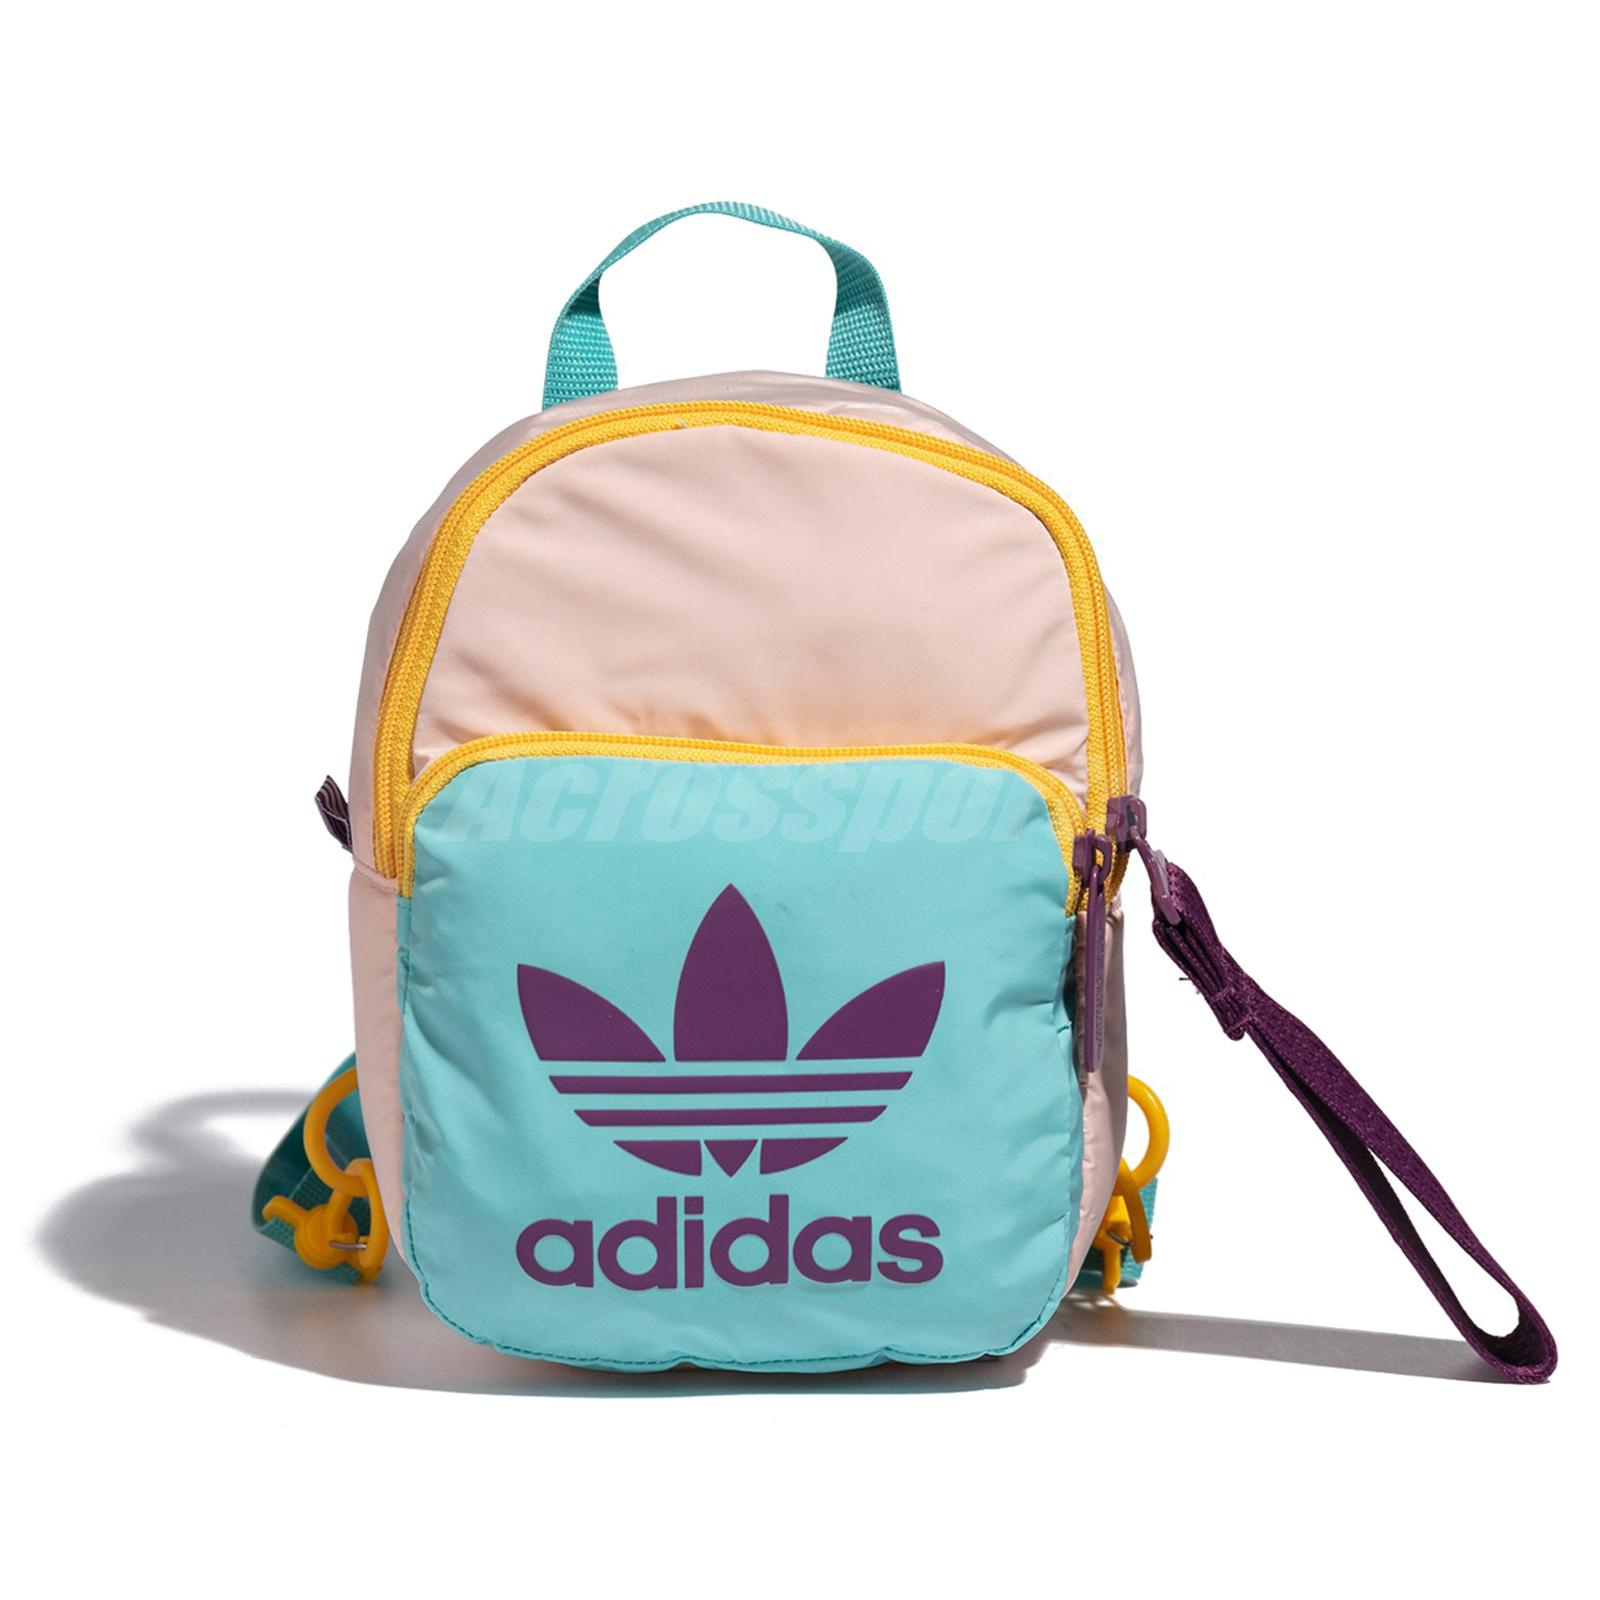 Details about adidas Mini Multi Color Blue Pink BP Backpack Small Women Kids Girl Bag FN3010